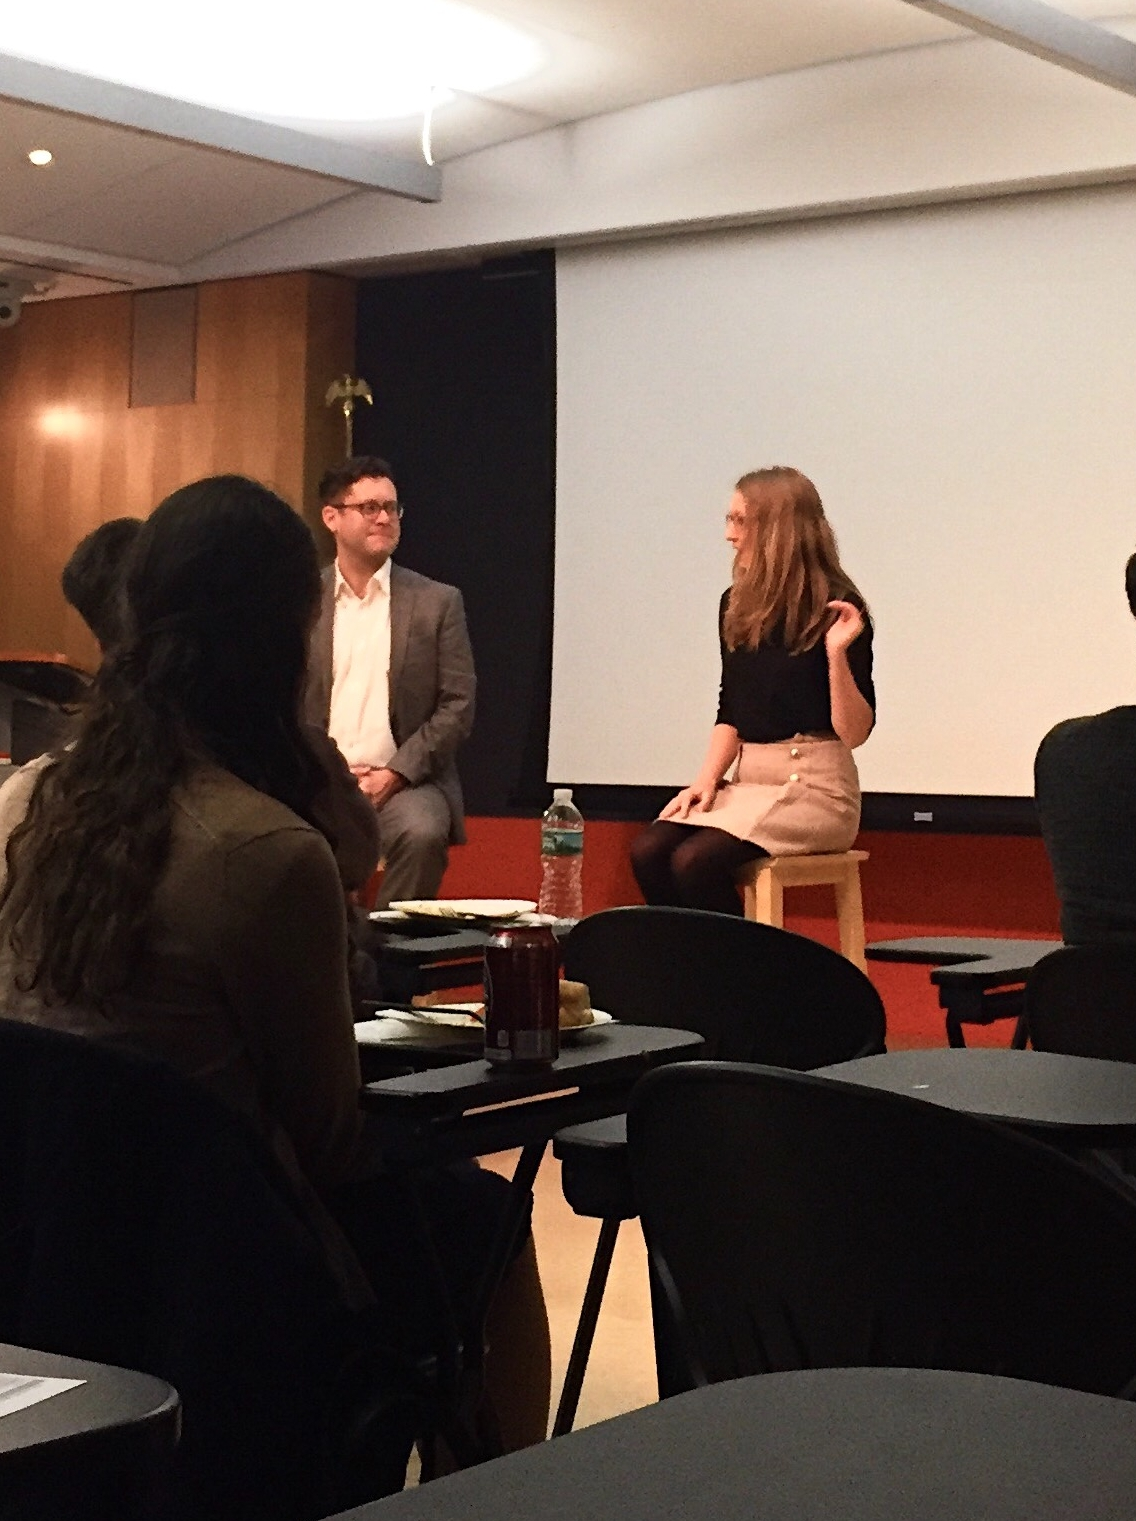 Bria Sandford and Professor Joshua Kinlaw talk about the publishing career track in the City Room at The King's College. || Photo credit to Rachel Williamson